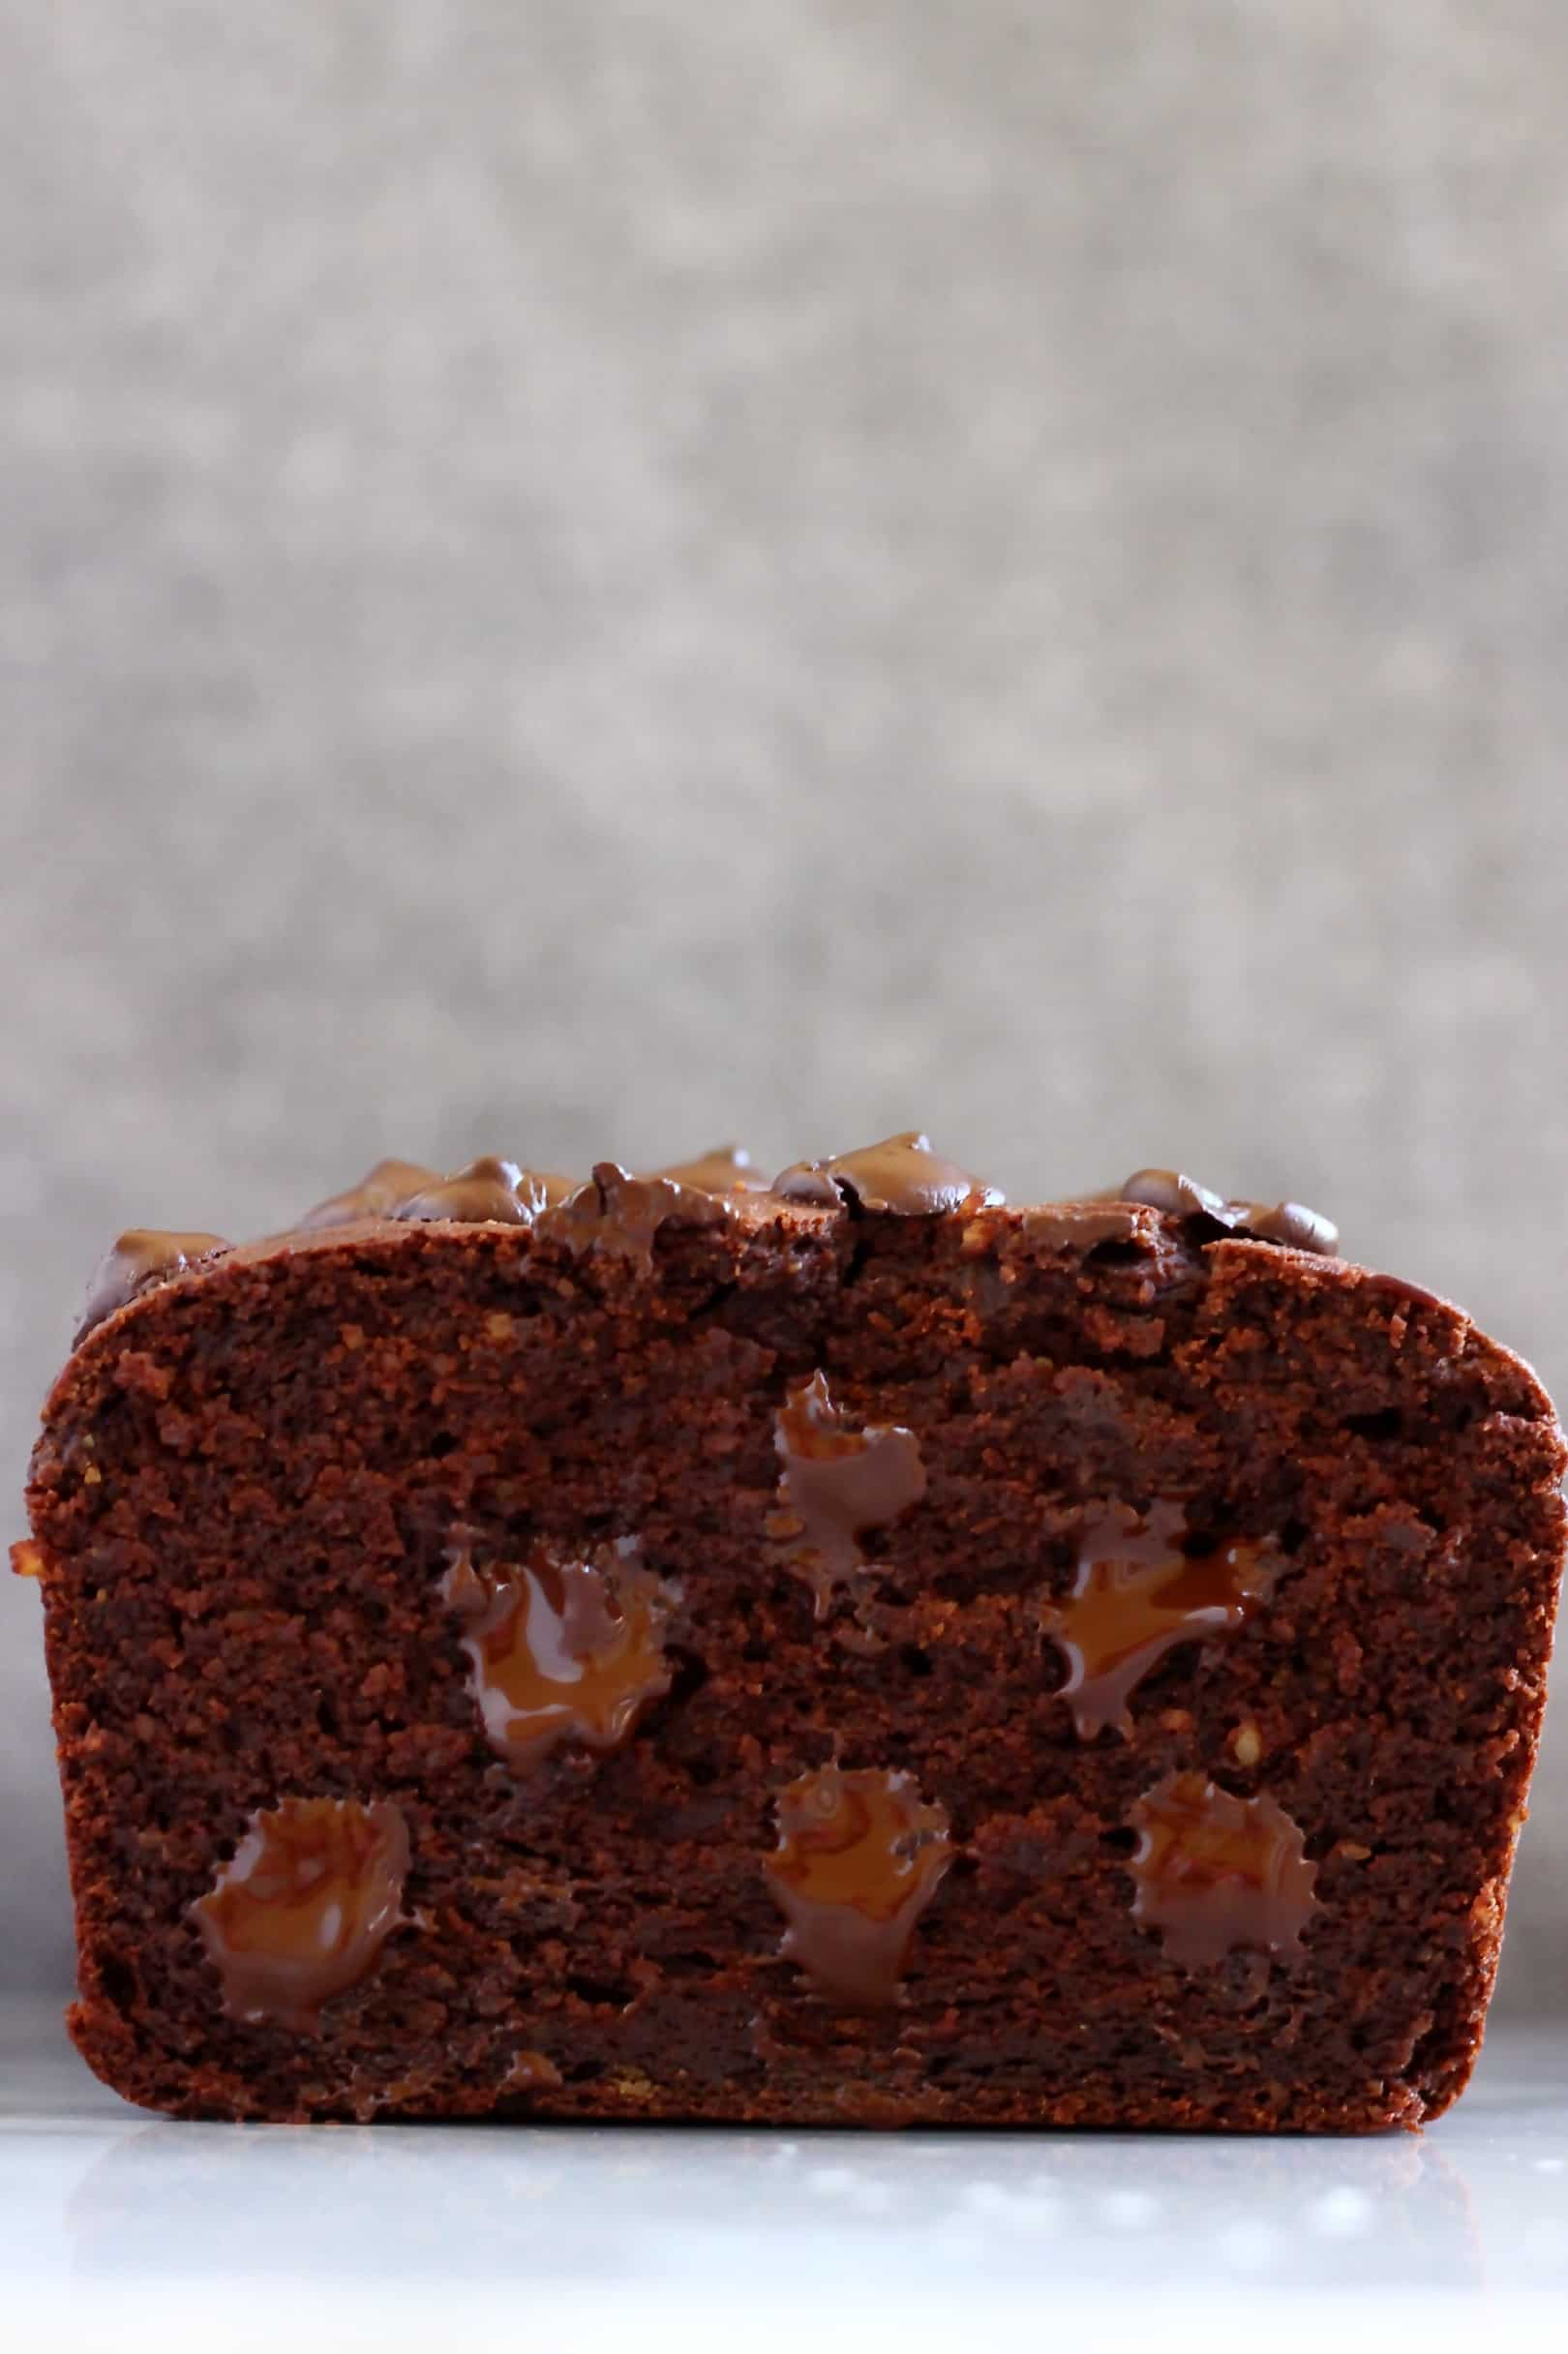 Sliced sweet potato chocolate loaf cake with chocolate chips against a grey background